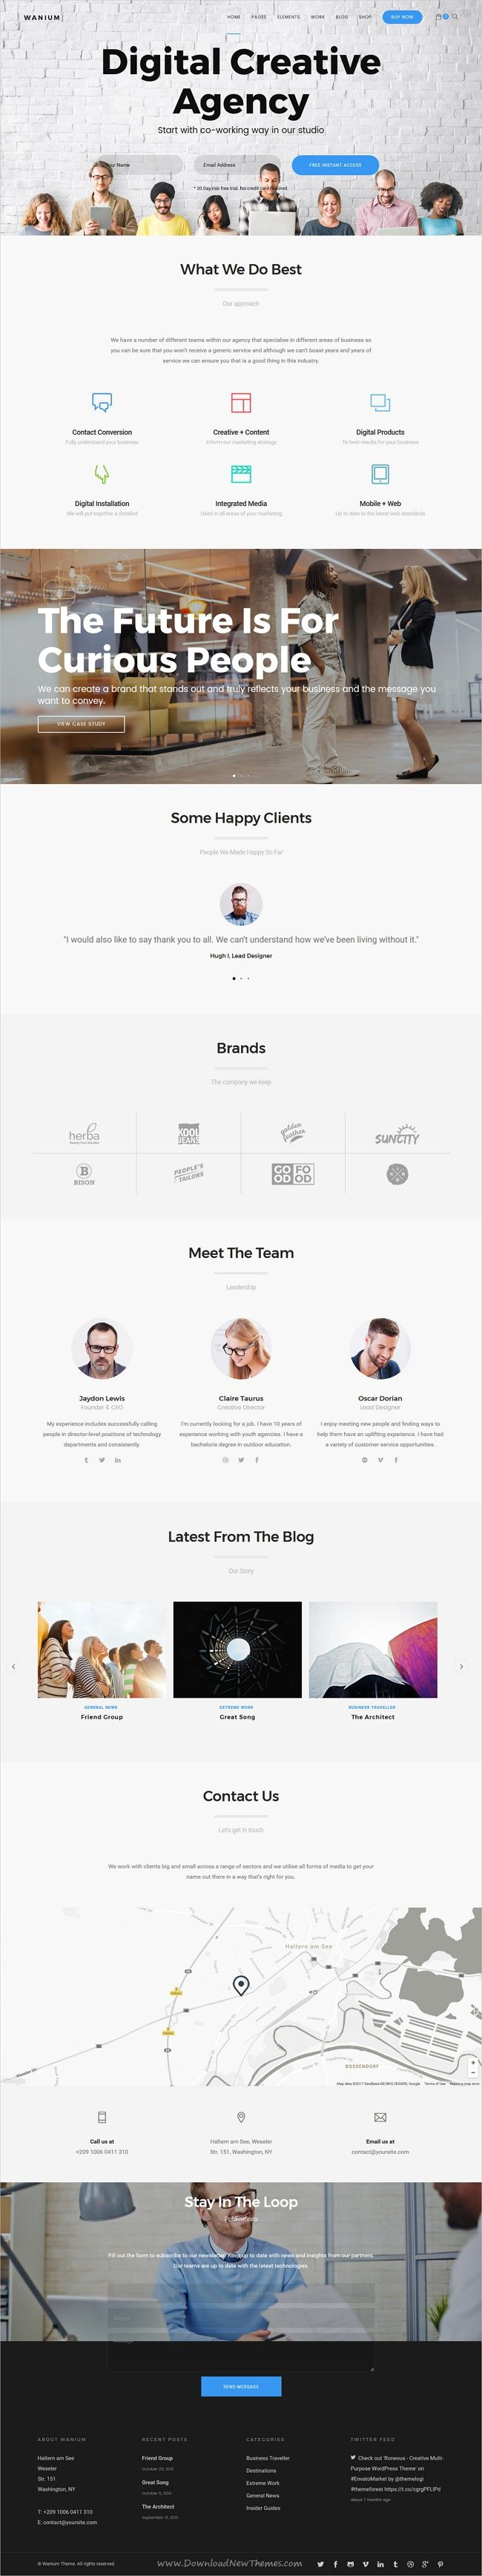 Wanium is a visually stunning responsive #WordPress theme for #digital #agency awesome websites with 18+ multipurpose niche homepage layouts download now➩ https://themeforest.net/item/wanium-a-elegant-multiconcept-theme/18977142?ref=Datasata